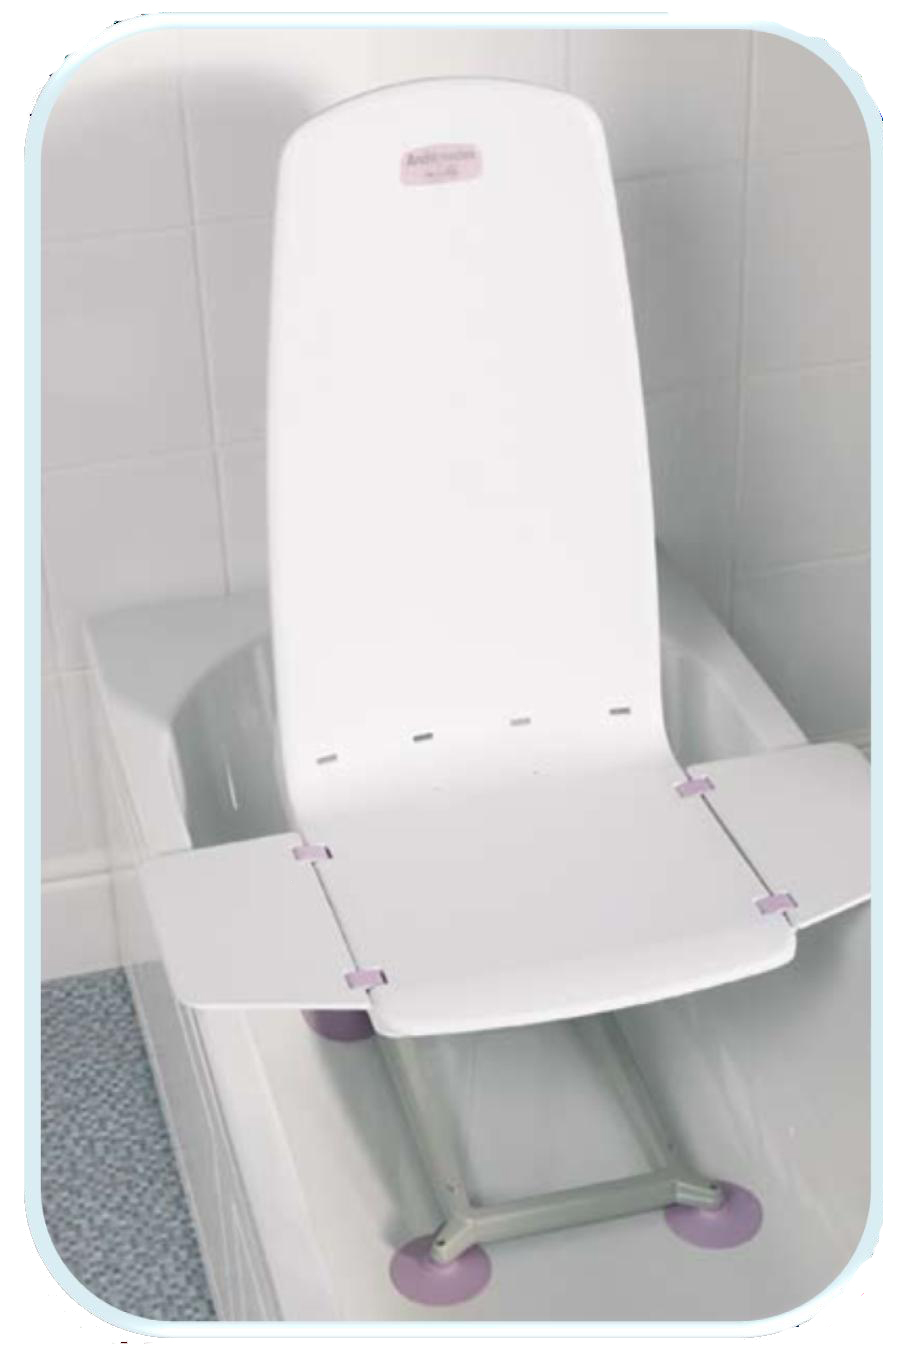 adulthoyer bath lift sling, bath tub chair lifts, hoyer lift bath sling, bellavita bath lift